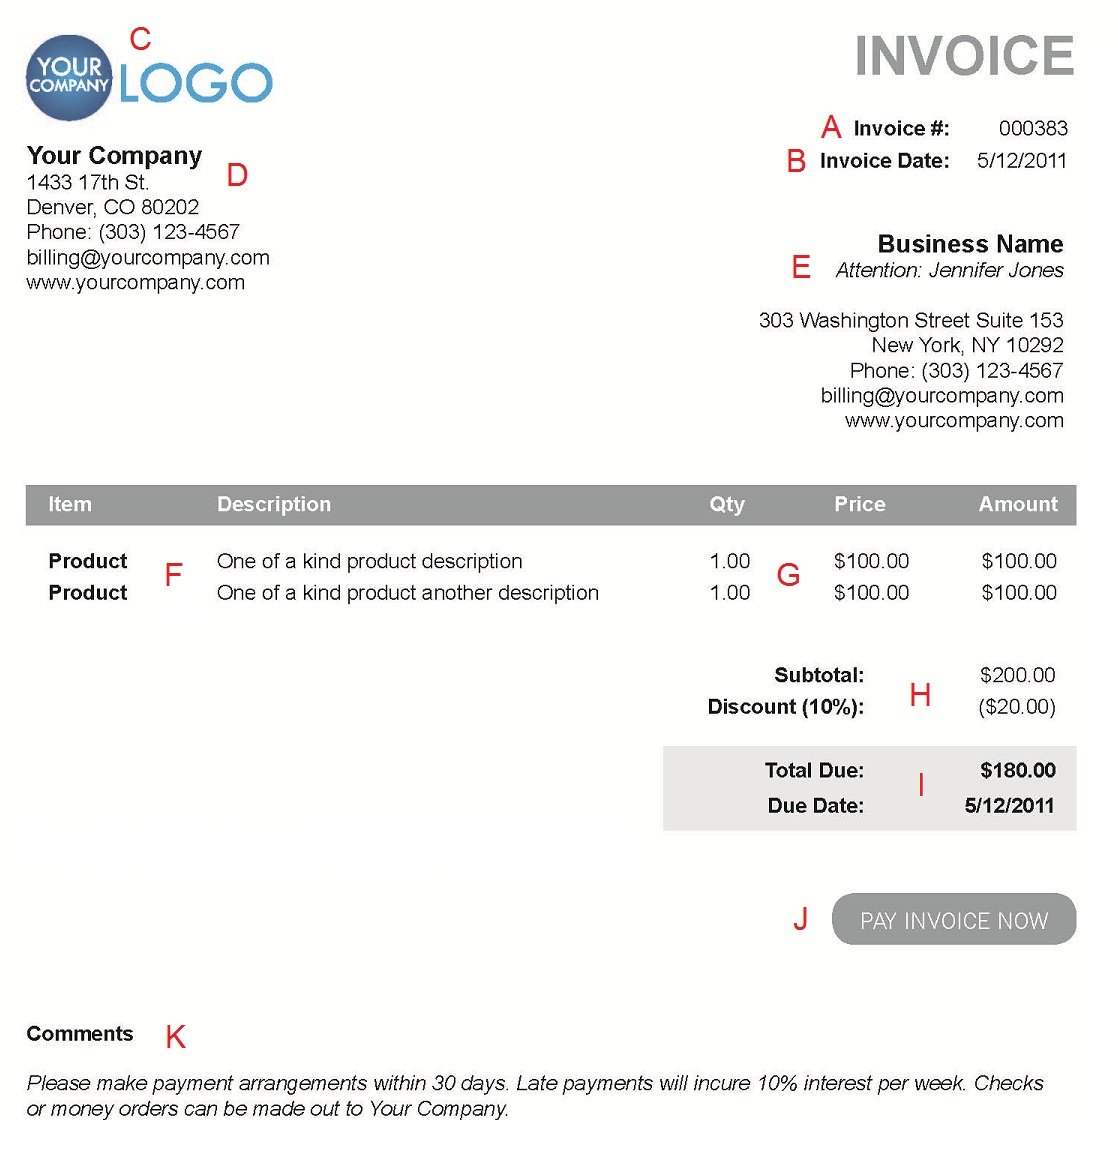 Hucareus  Outstanding The  Different Sections Of An Electronic Payment Invoice With Fetching A  With Cool Invoicing Software Mac Also What Is The Difference Between Msrp And Invoice In Addition Invoicing Template And Definition Of Invoice Price As Well As The Invoice Additionally Vendor Invoice Template From Paysimplecom With Hucareus  Fetching The  Different Sections Of An Electronic Payment Invoice With Cool A  And Outstanding Invoicing Software Mac Also What Is The Difference Between Msrp And Invoice In Addition Invoicing Template From Paysimplecom